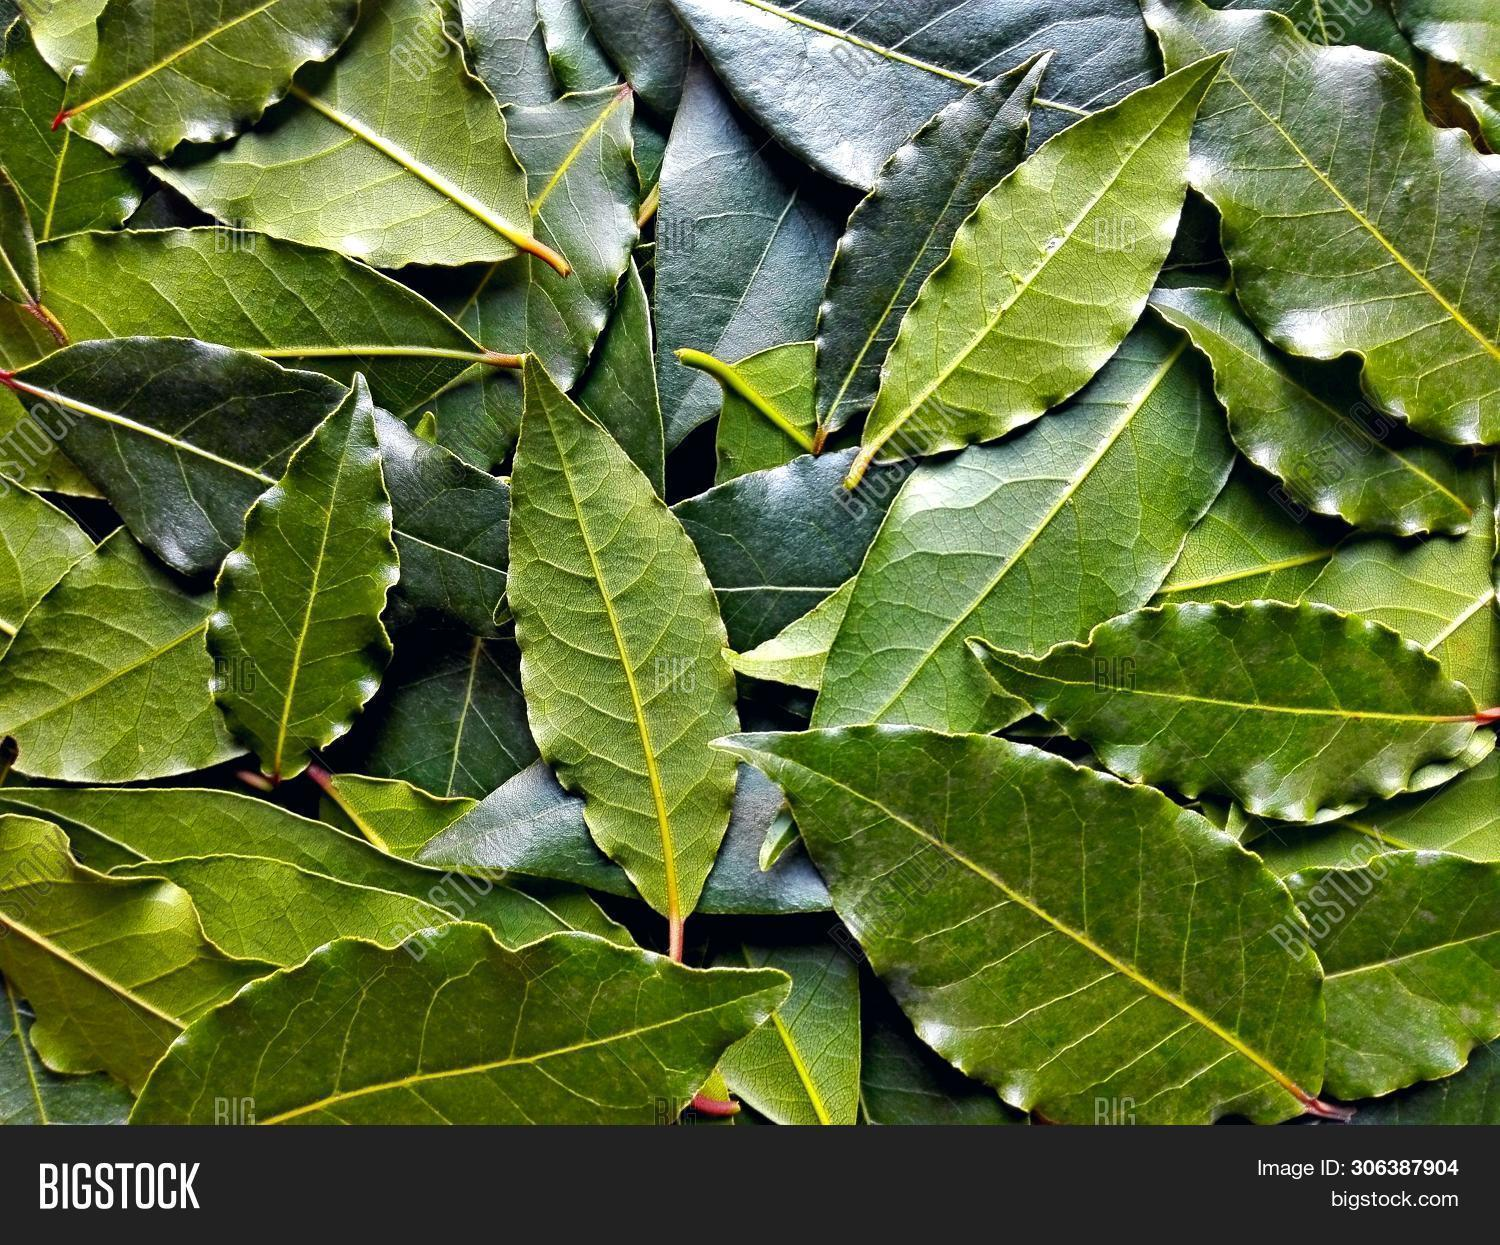 aroma,aromatic,background,bay,bayleaf,beautiful,beauty,branch,bright,close,closeup,color,cooking,dry,foliage,food,fragrance,fresh,garden,green,growth,health,healthy,herb,indian,ingredient,lauraceae,laurel,laurus,leaf,leaves,macro,natural,nature,nobilis,organic,pattern,plant,raw,season,seasoning,spice,texture,tree,tropical,up,water